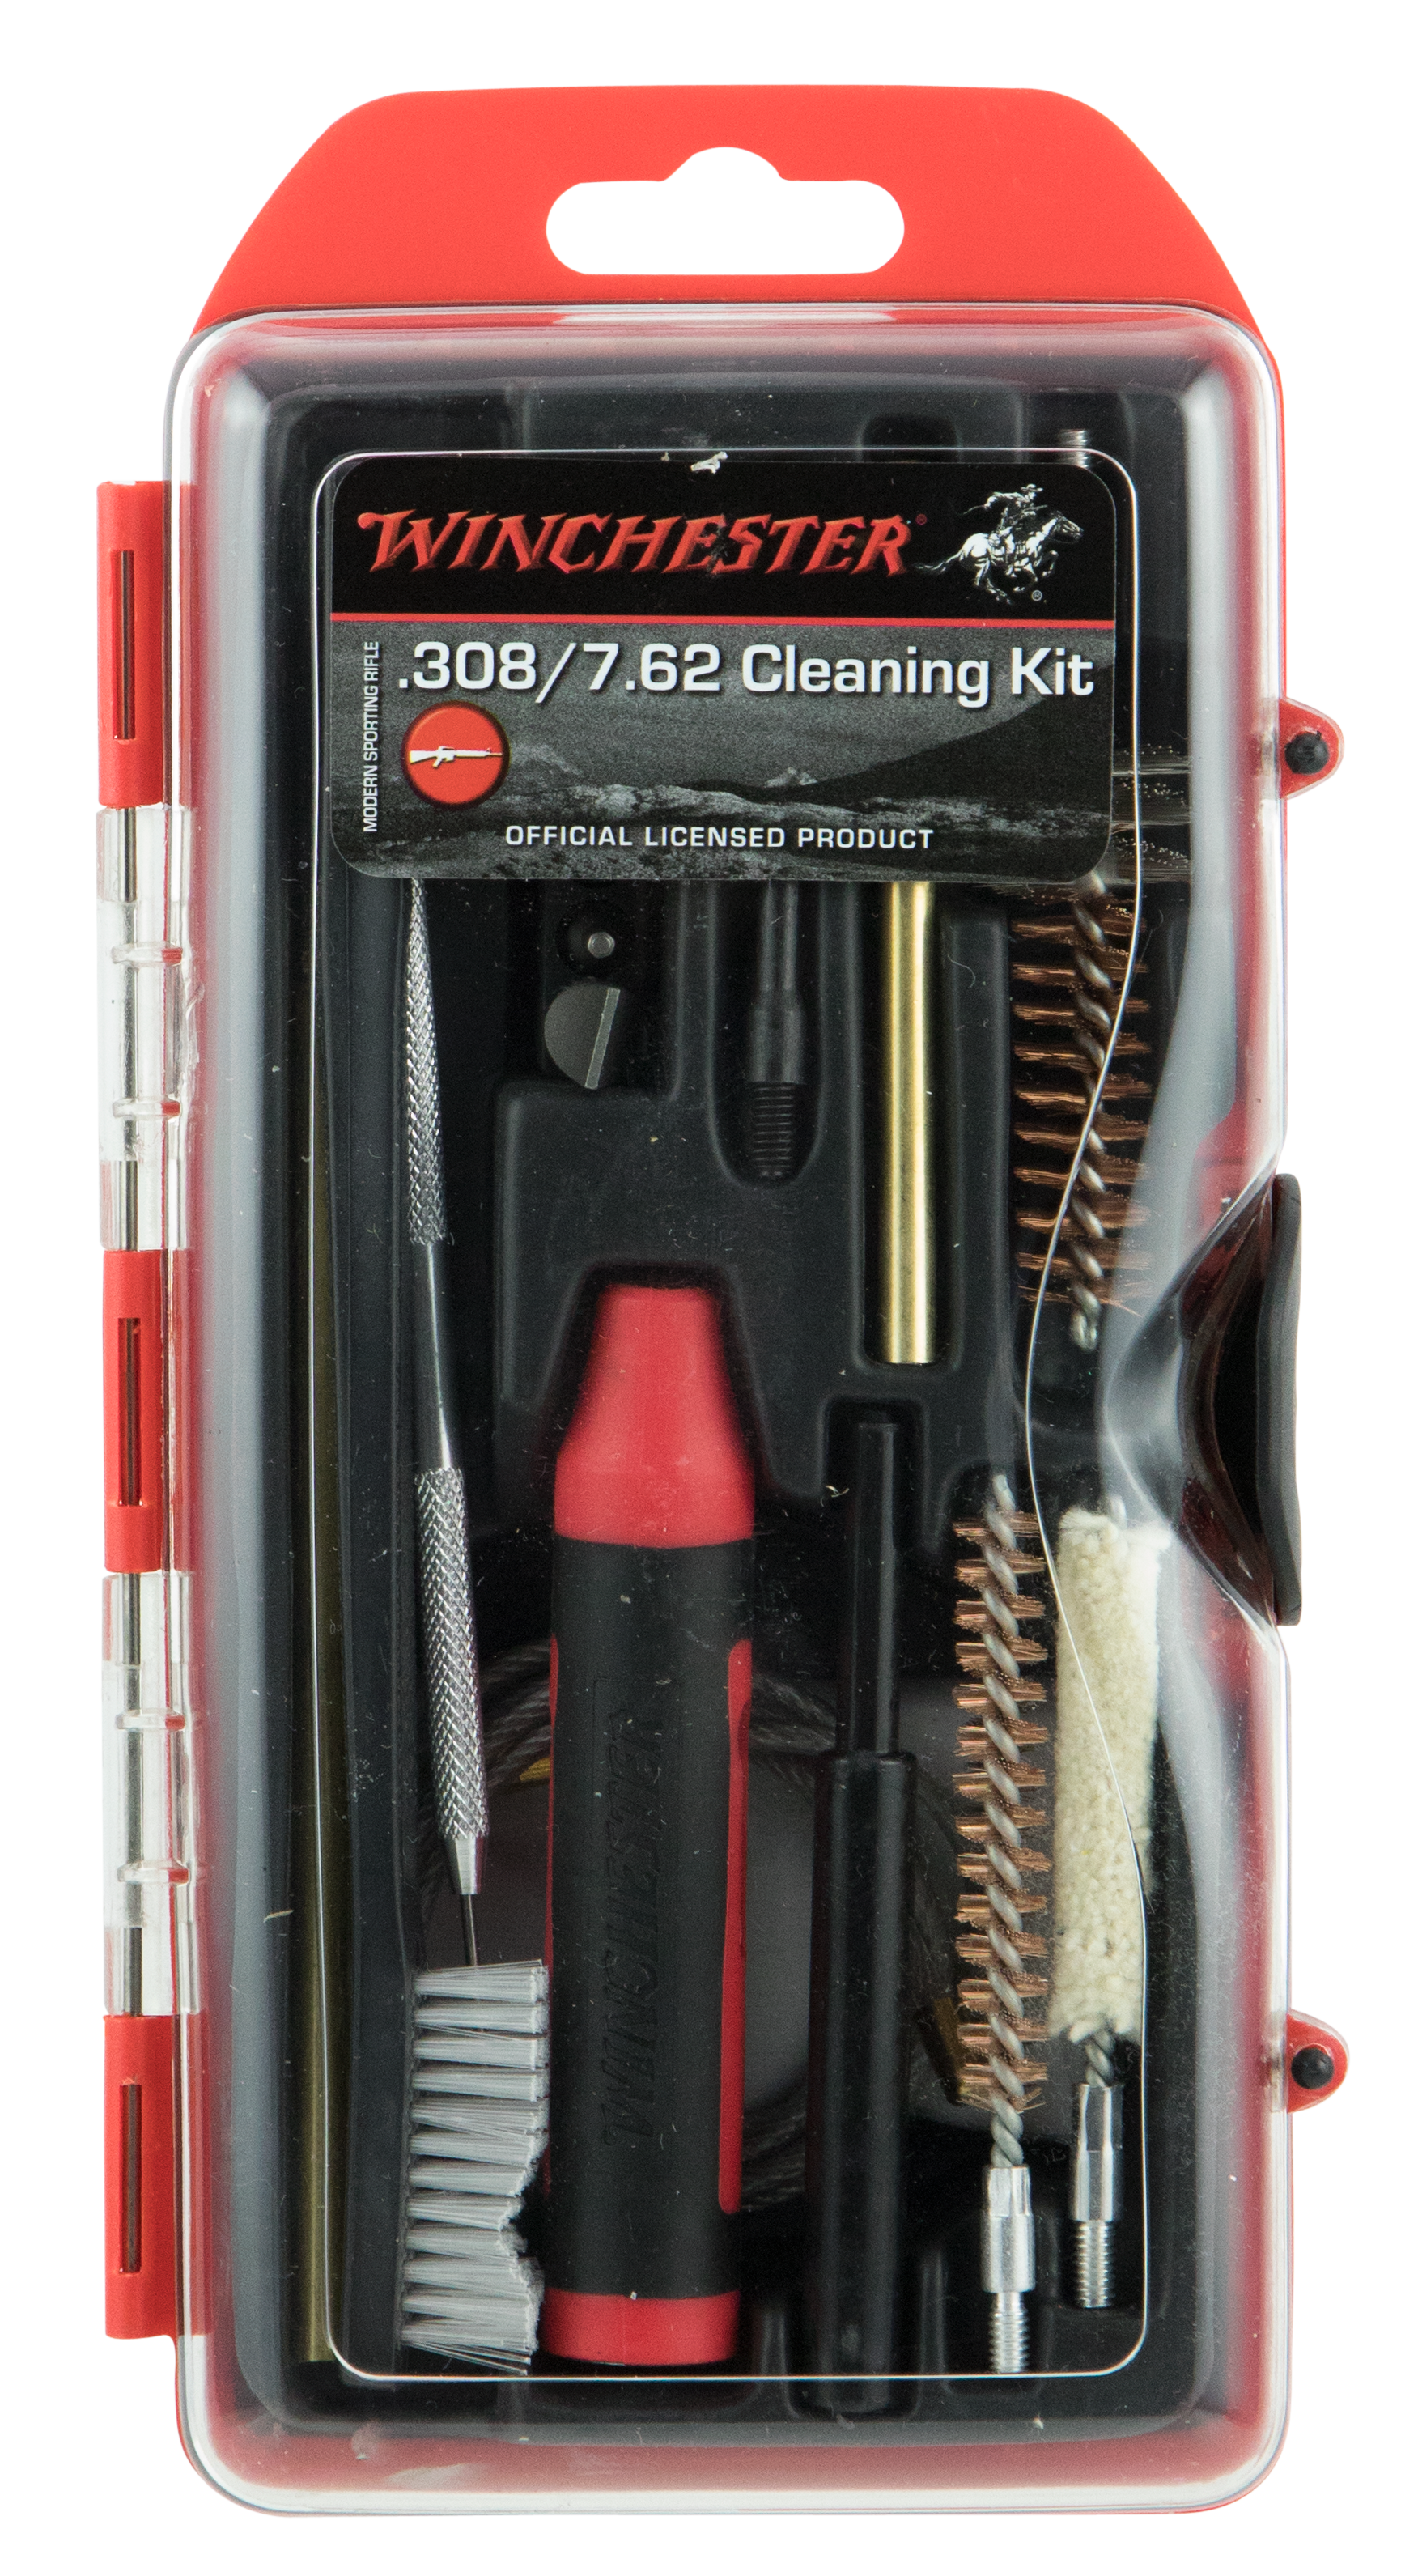 DAC 308AR Rifle Cleaning Kit 7.62 NATO/308 Win 17 Pieces